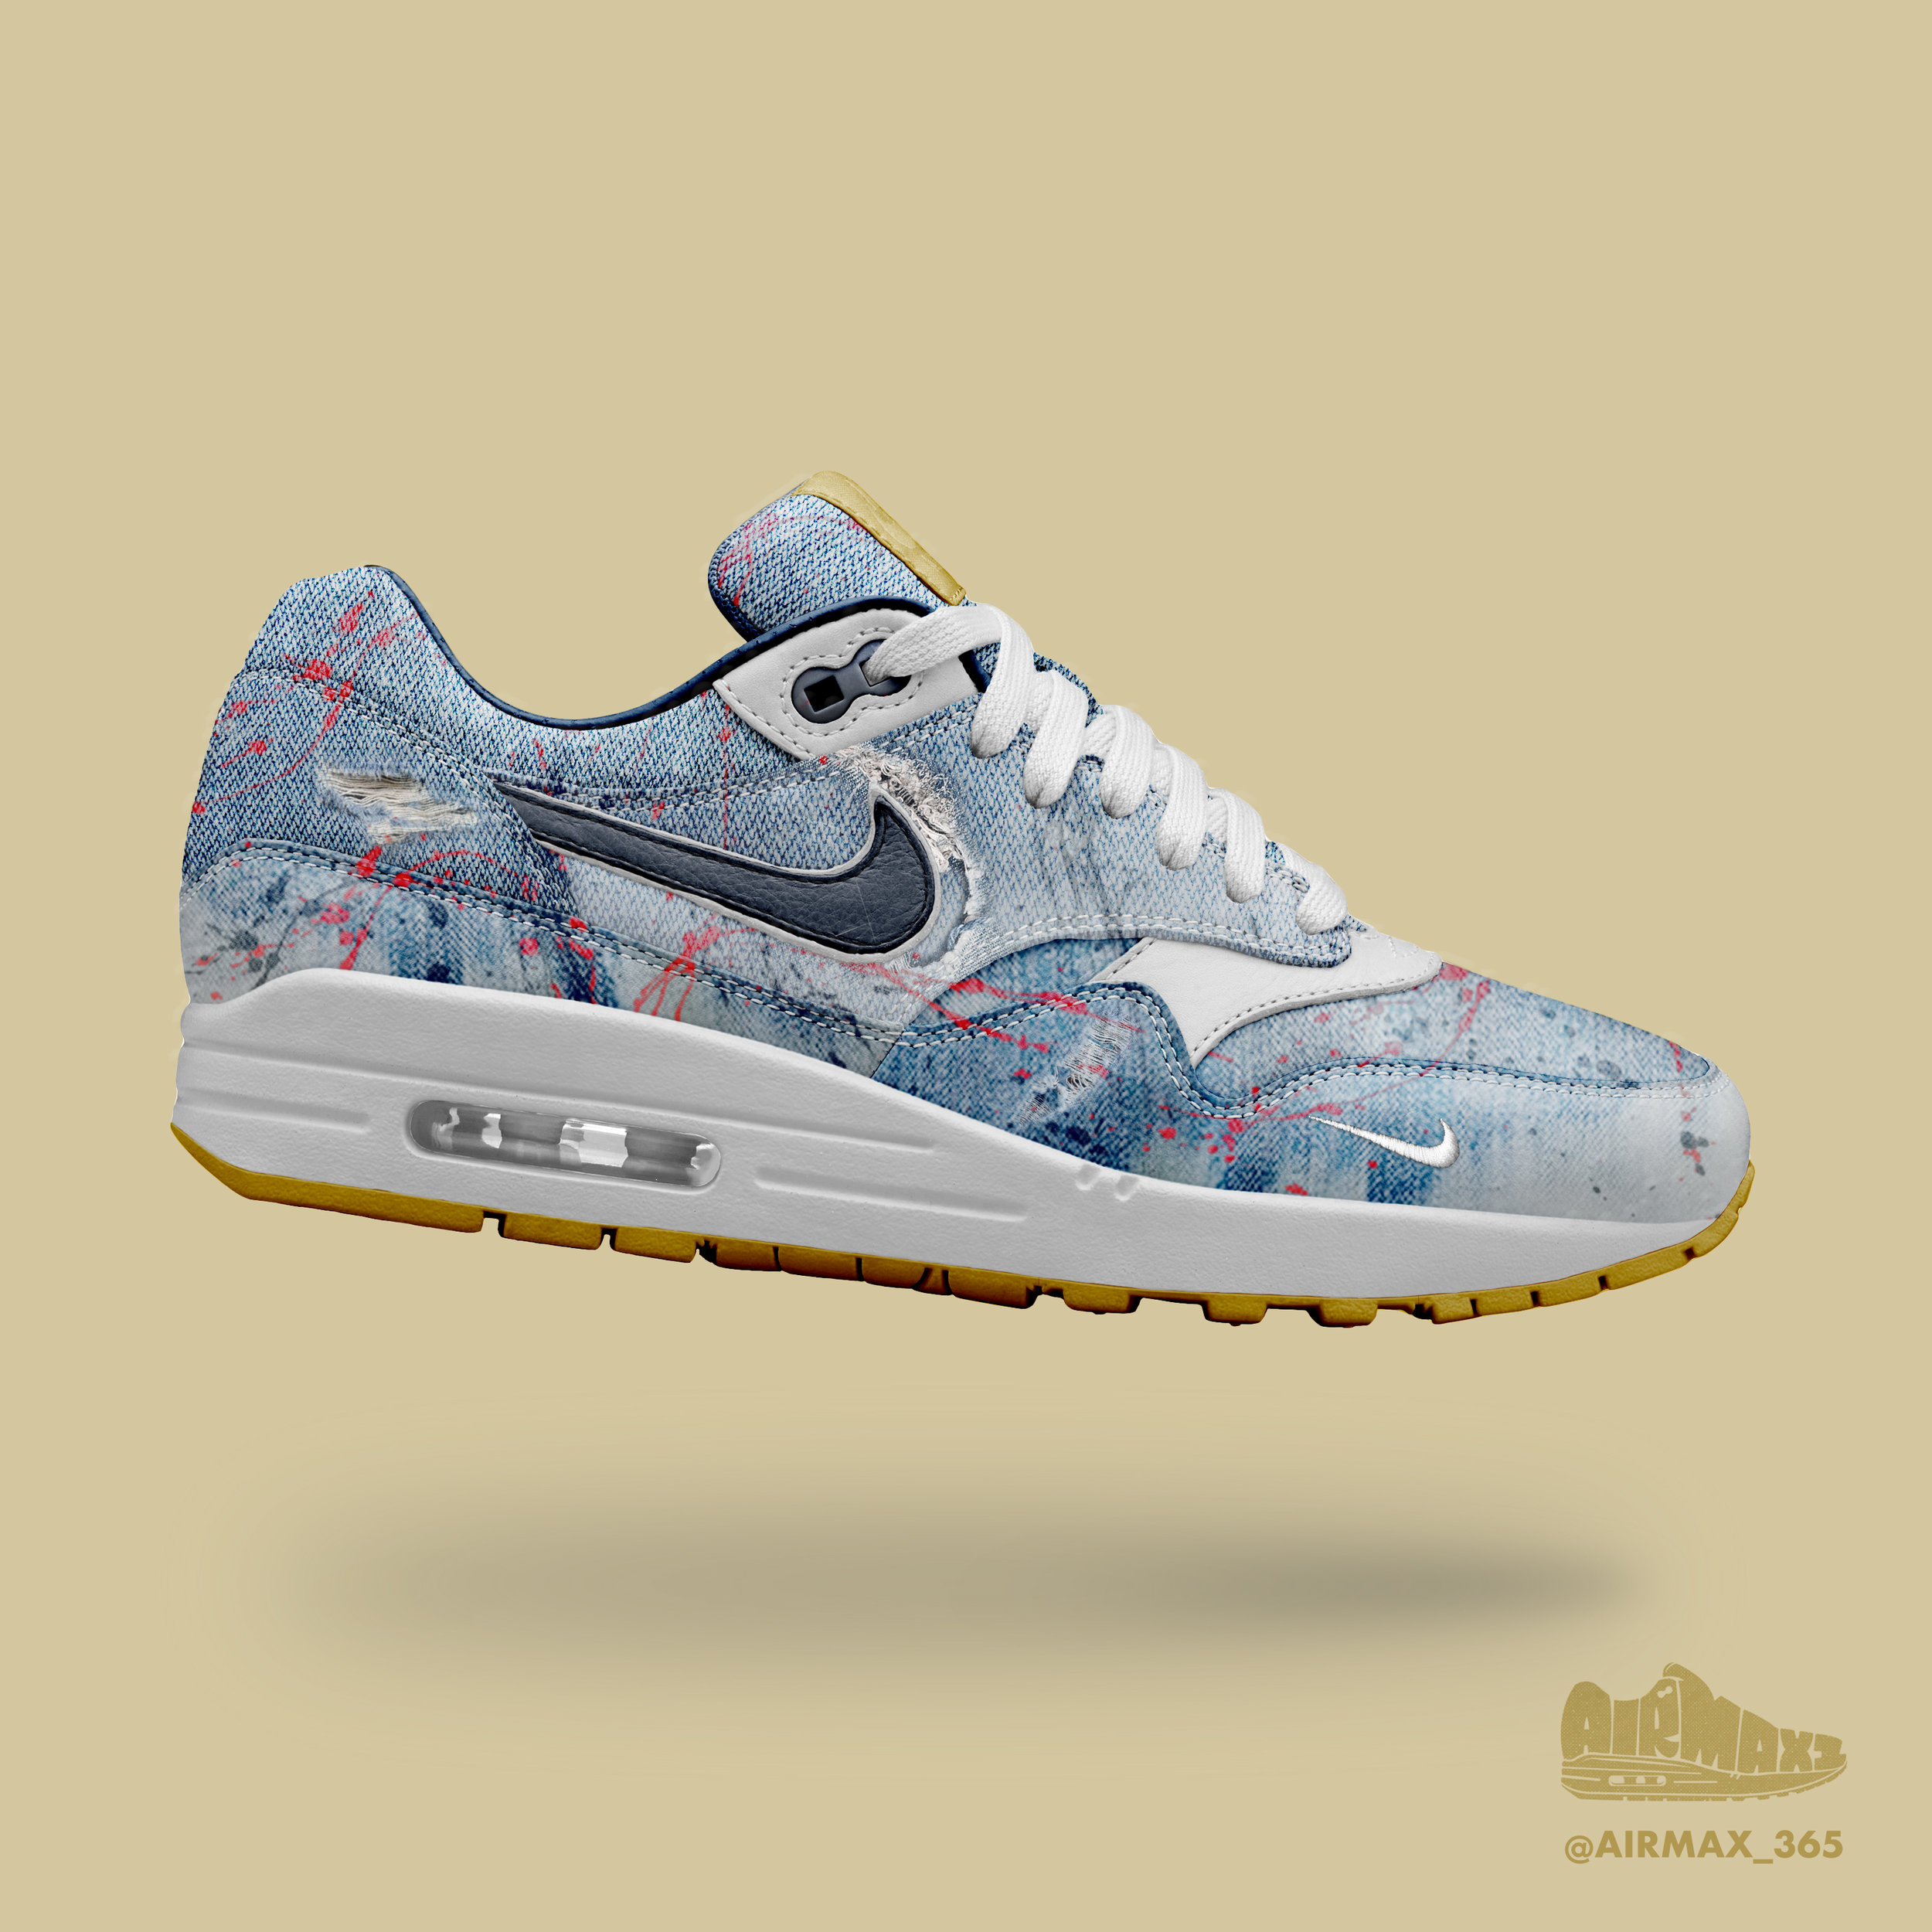 Day 178: Air Max 1 Painters Jeans